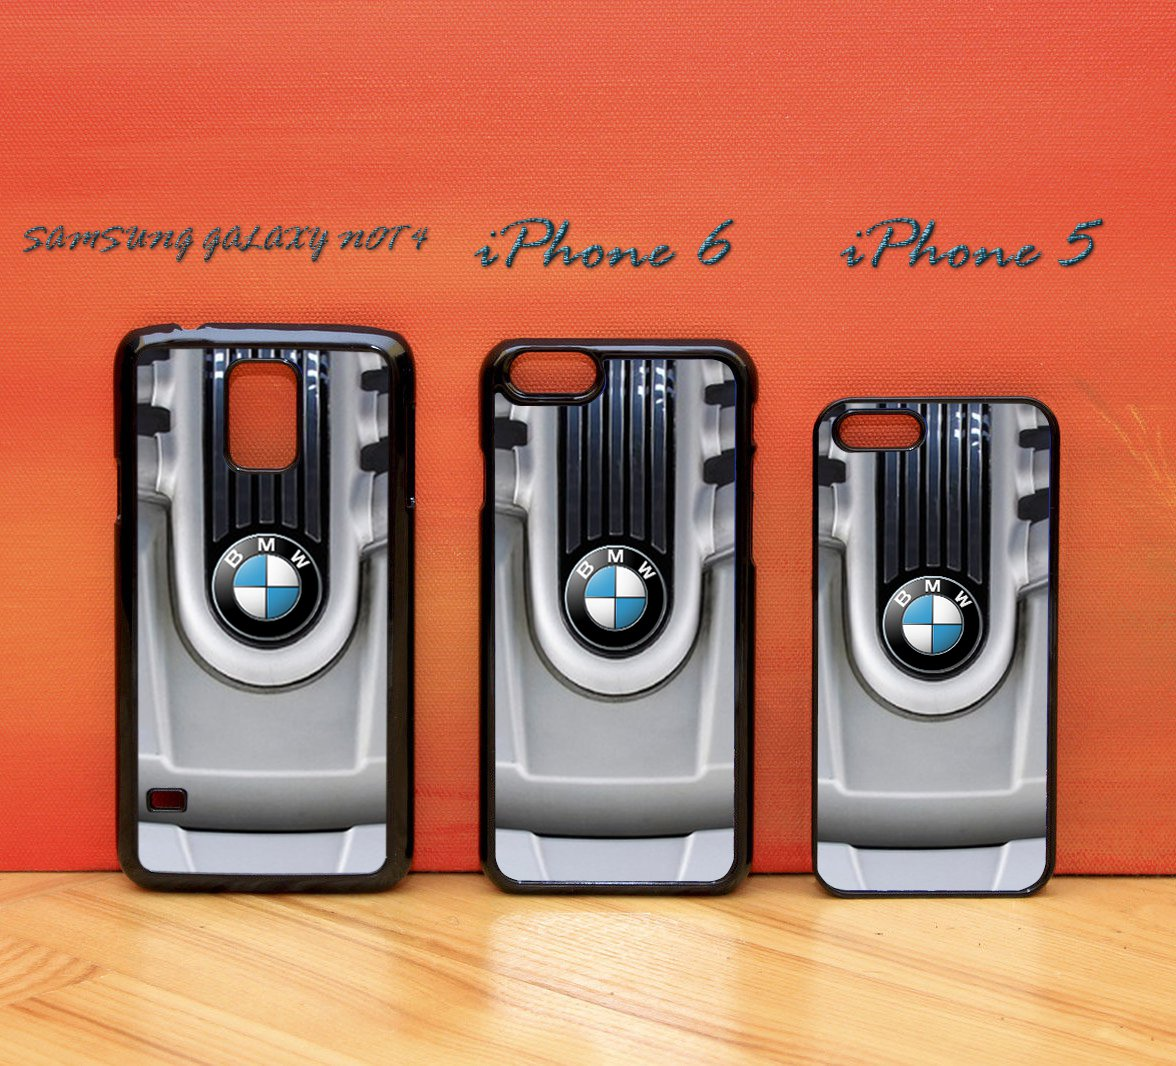 BMW 750iL V12 E66 Turbo Engine iphone 6 case, iPhone 6 cover, iPhone 6 accsesories